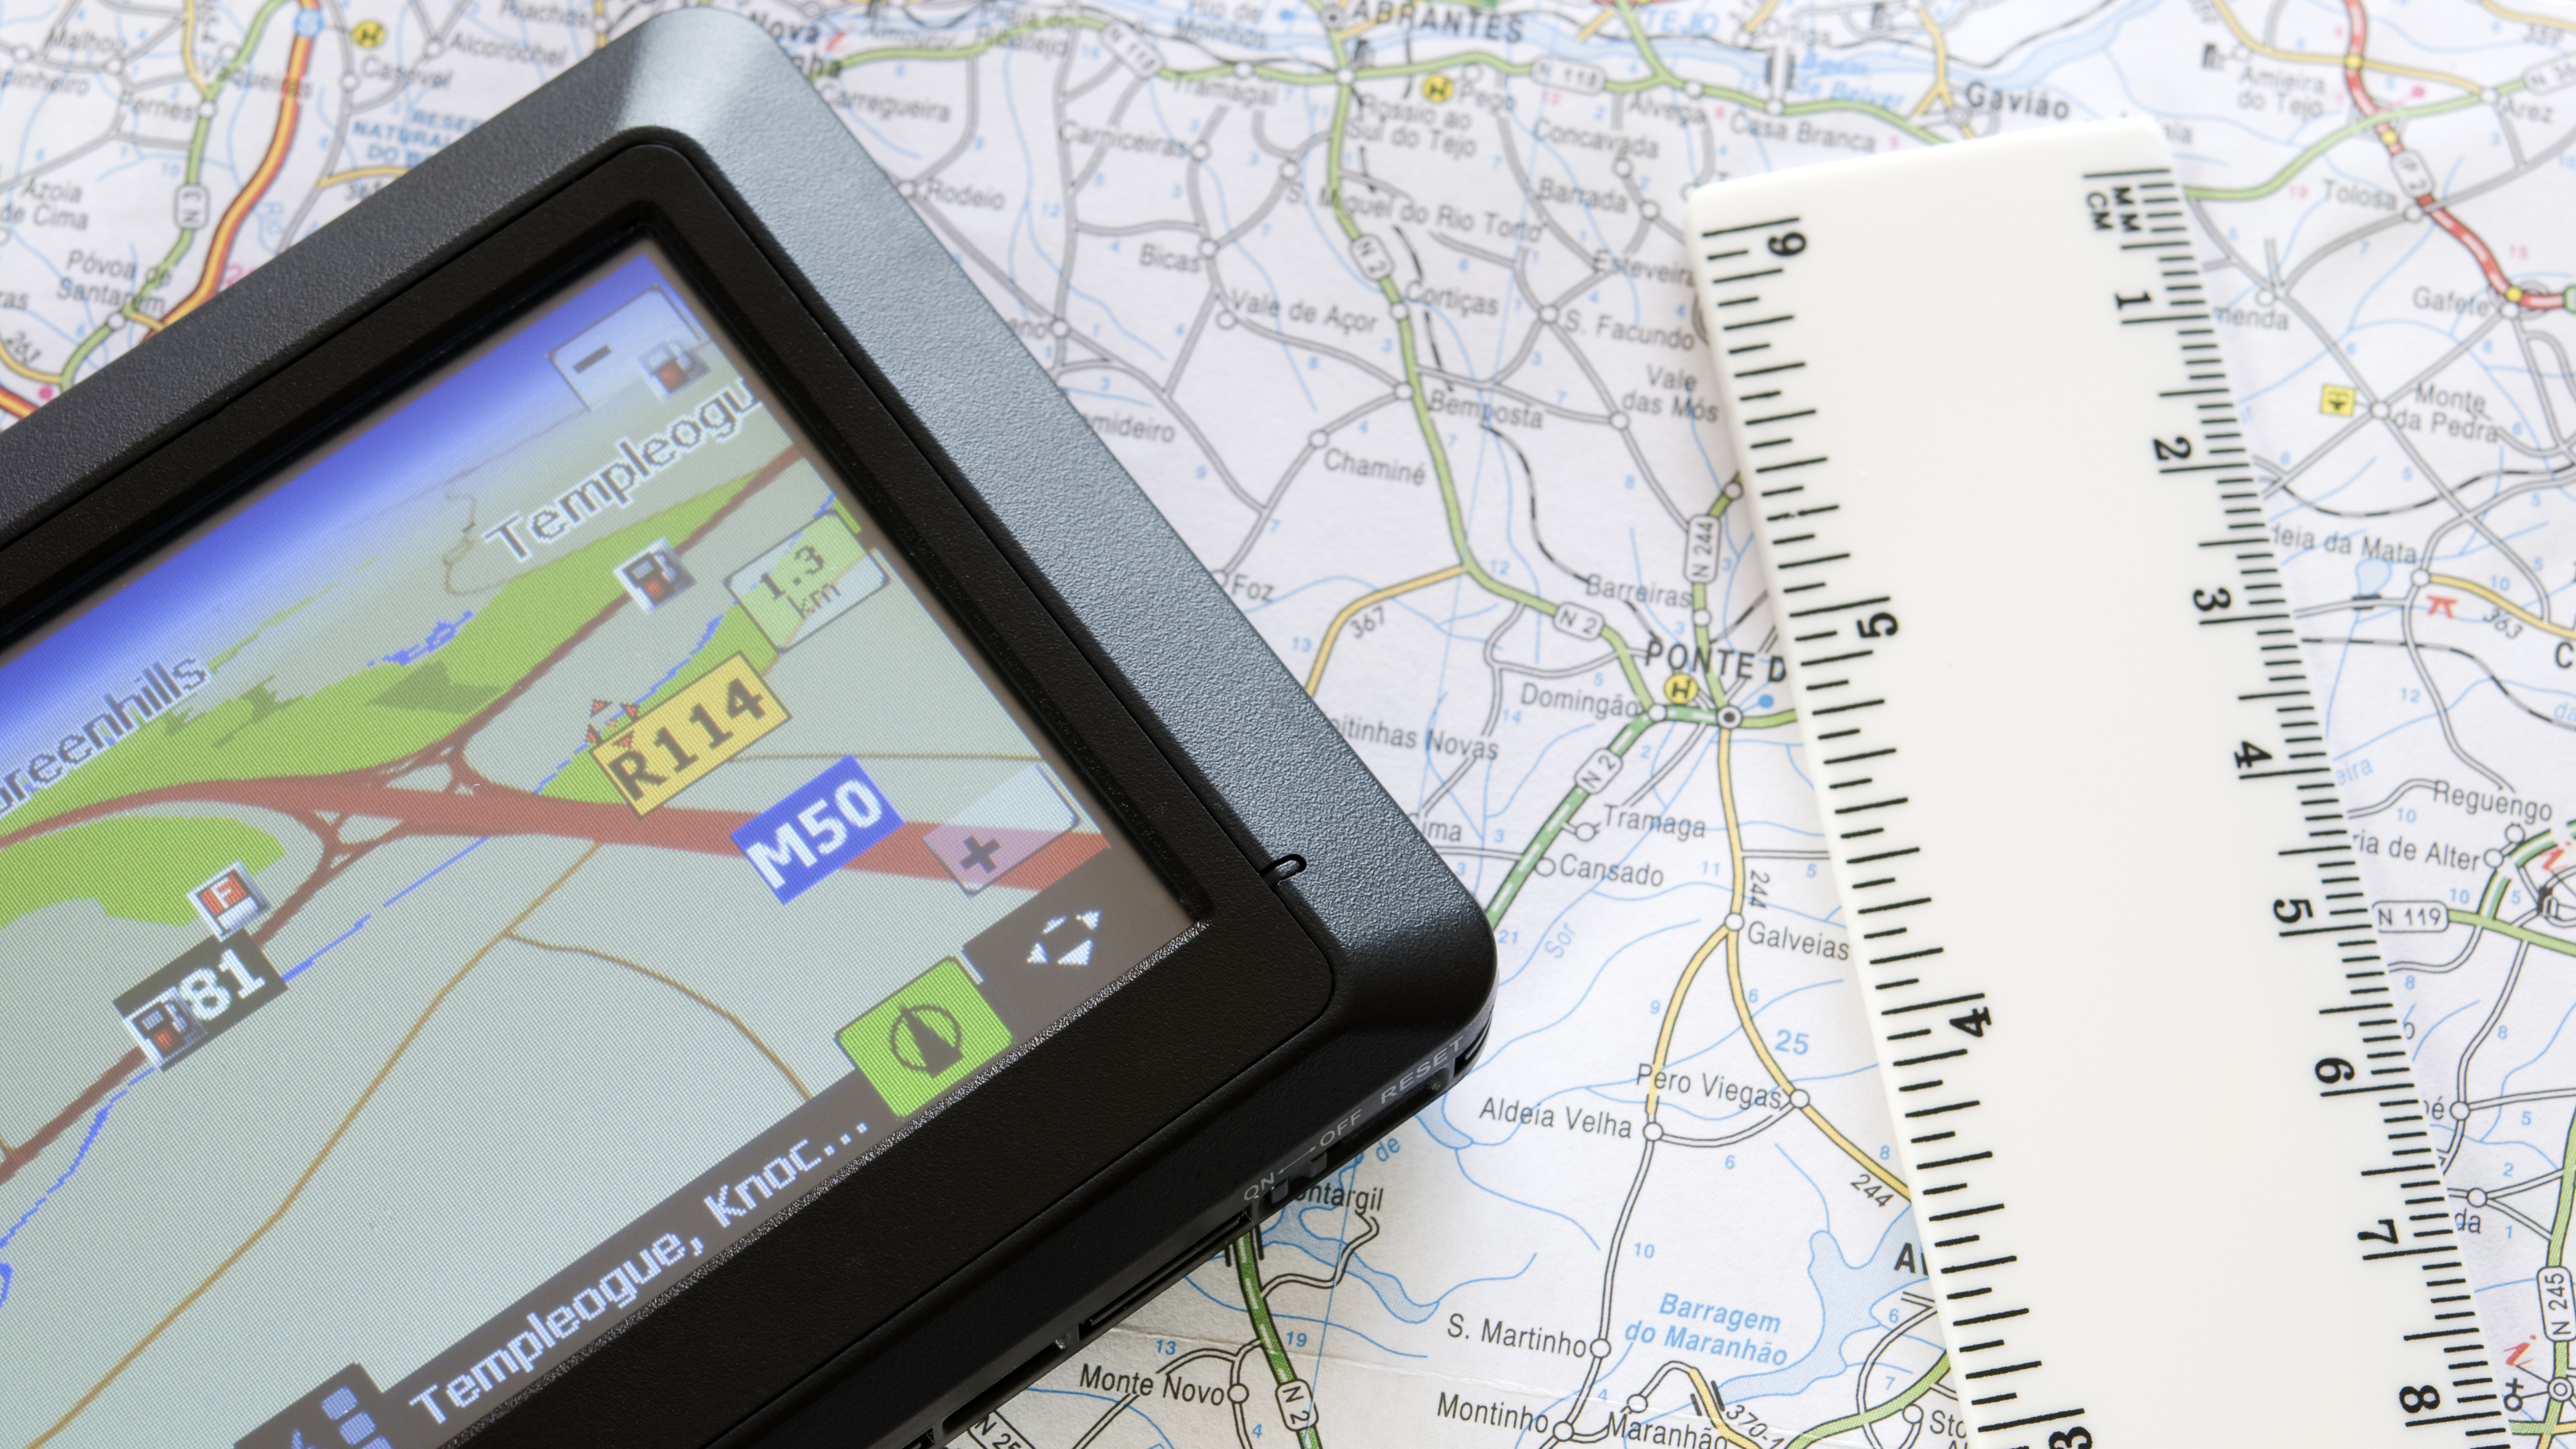 Bosch to acquire stake in map provider HERE - Bosch Media